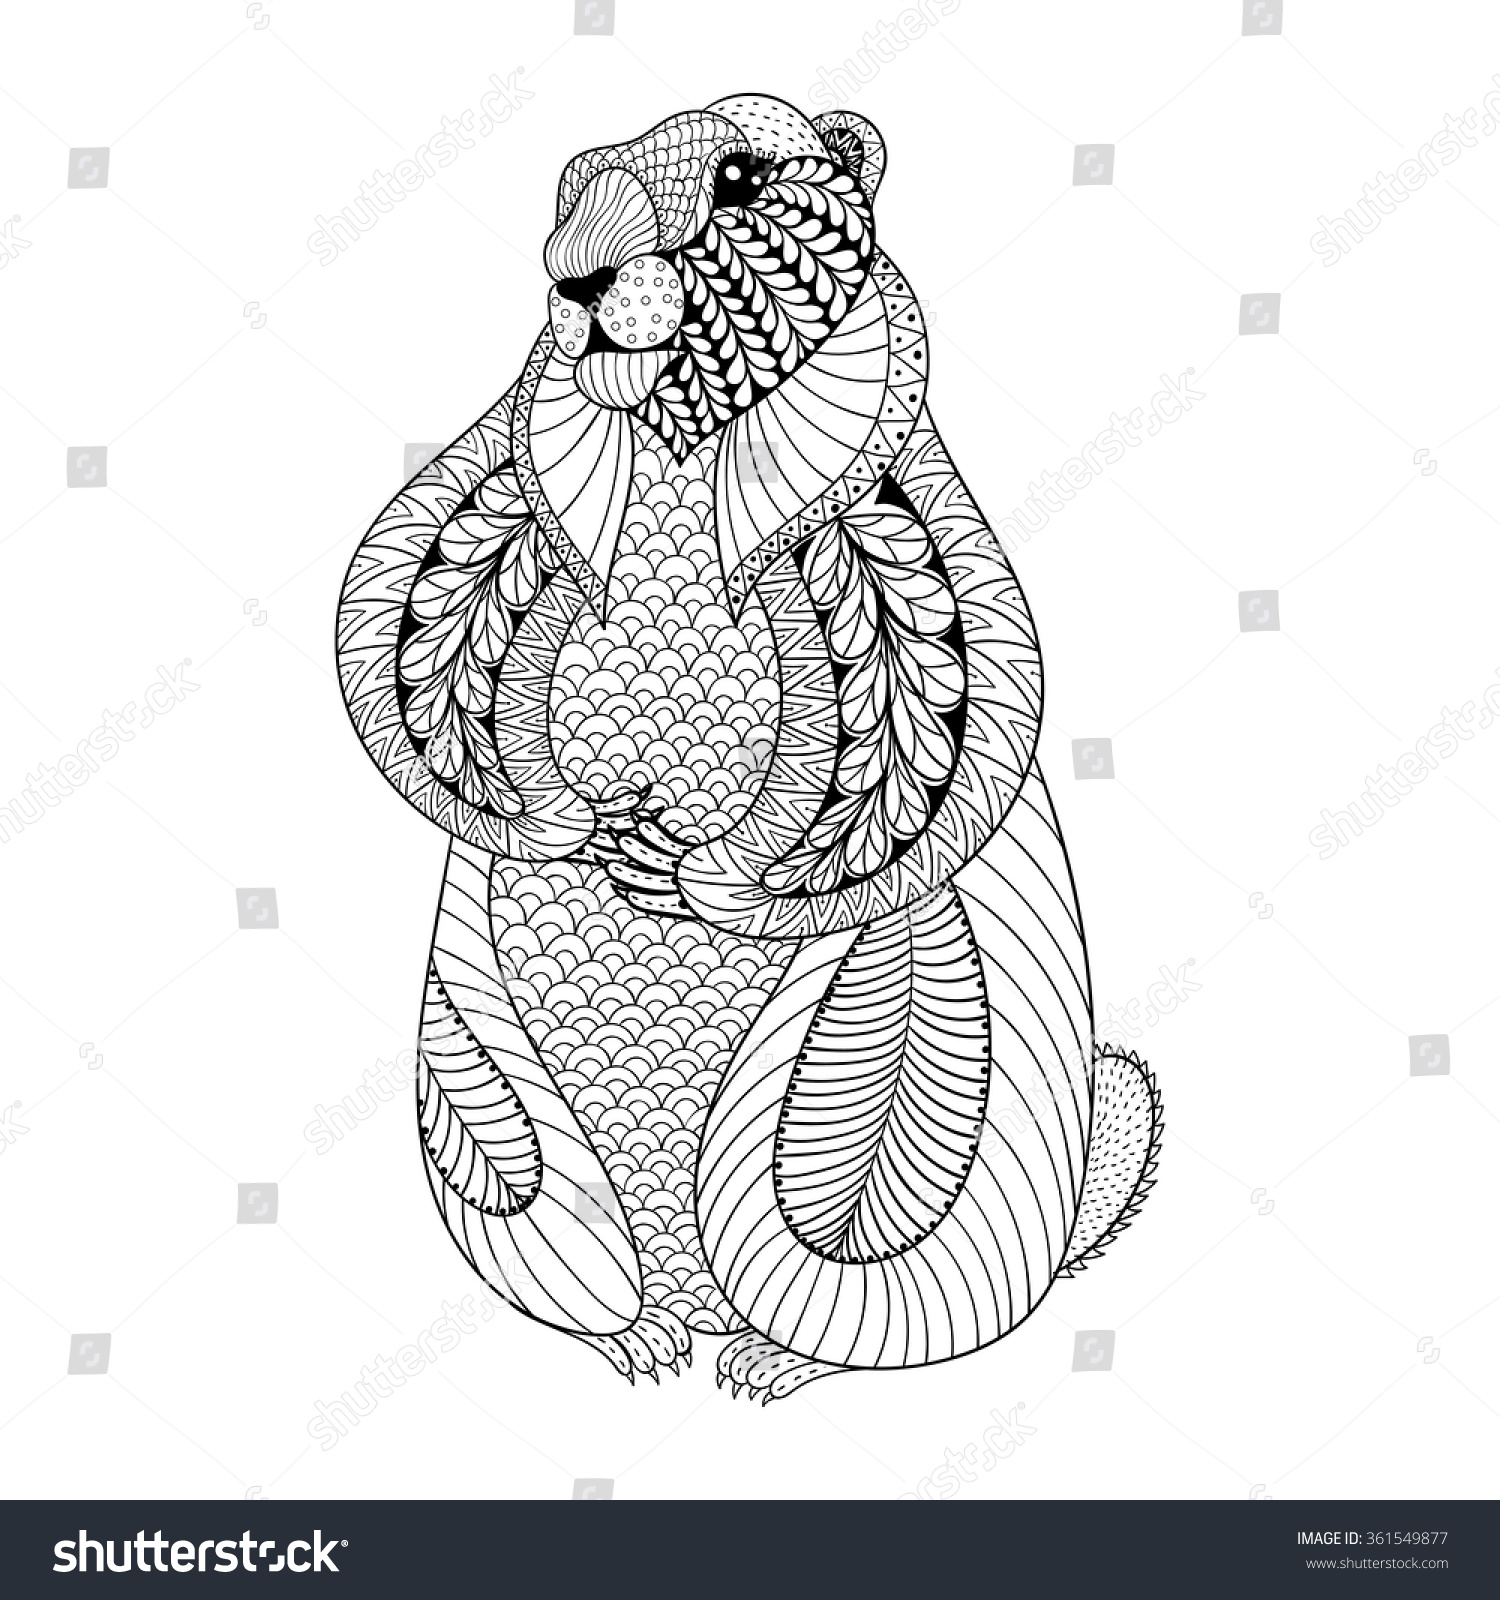 Hand Drawn Groundhog Adult Coloring Pages Stock Vector